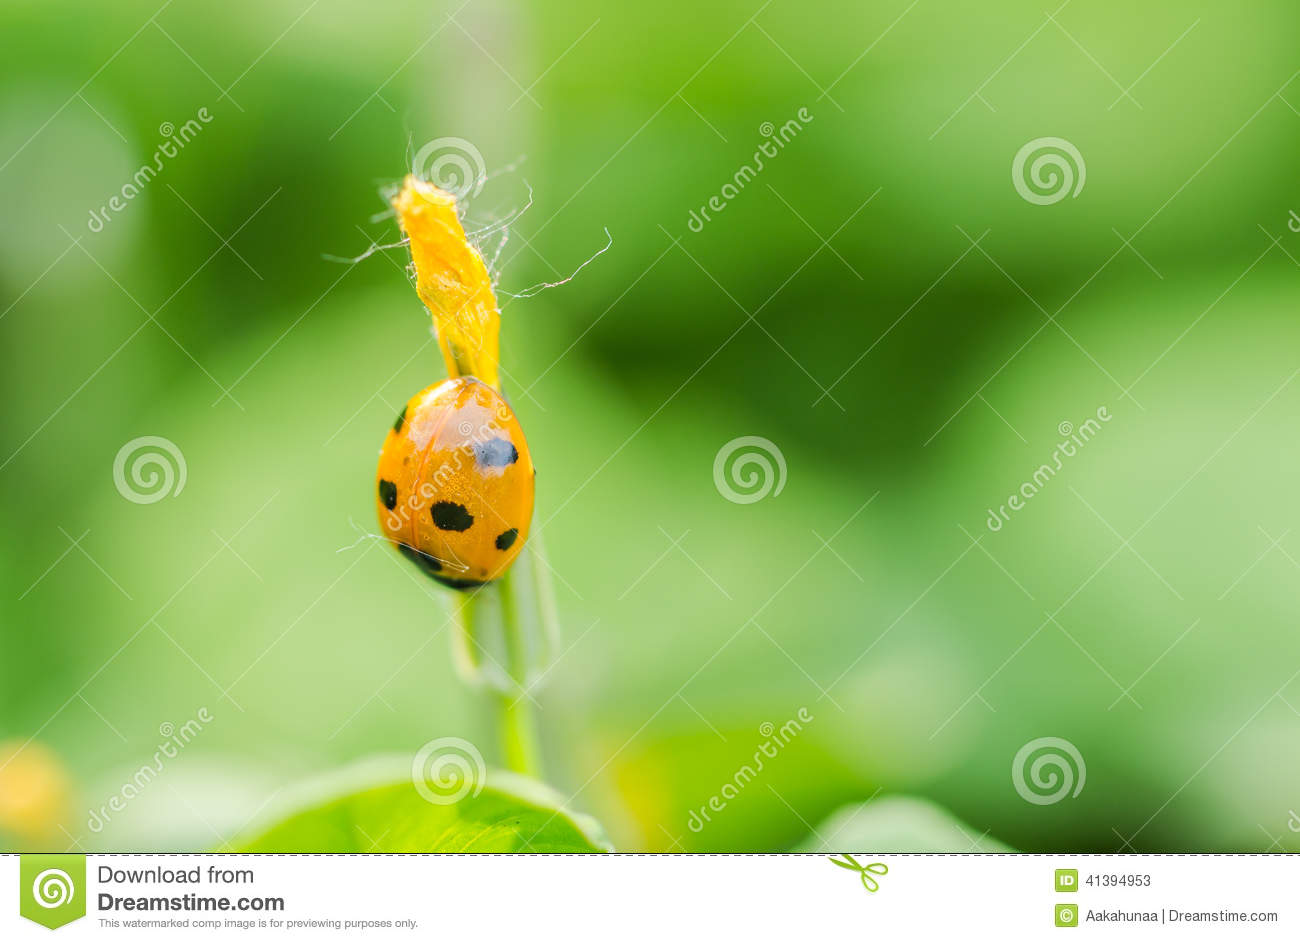 Finding Some Spots Of Bright Color At >> The Beetles Stock Image Image Of Beetles Close Ecology 41394953